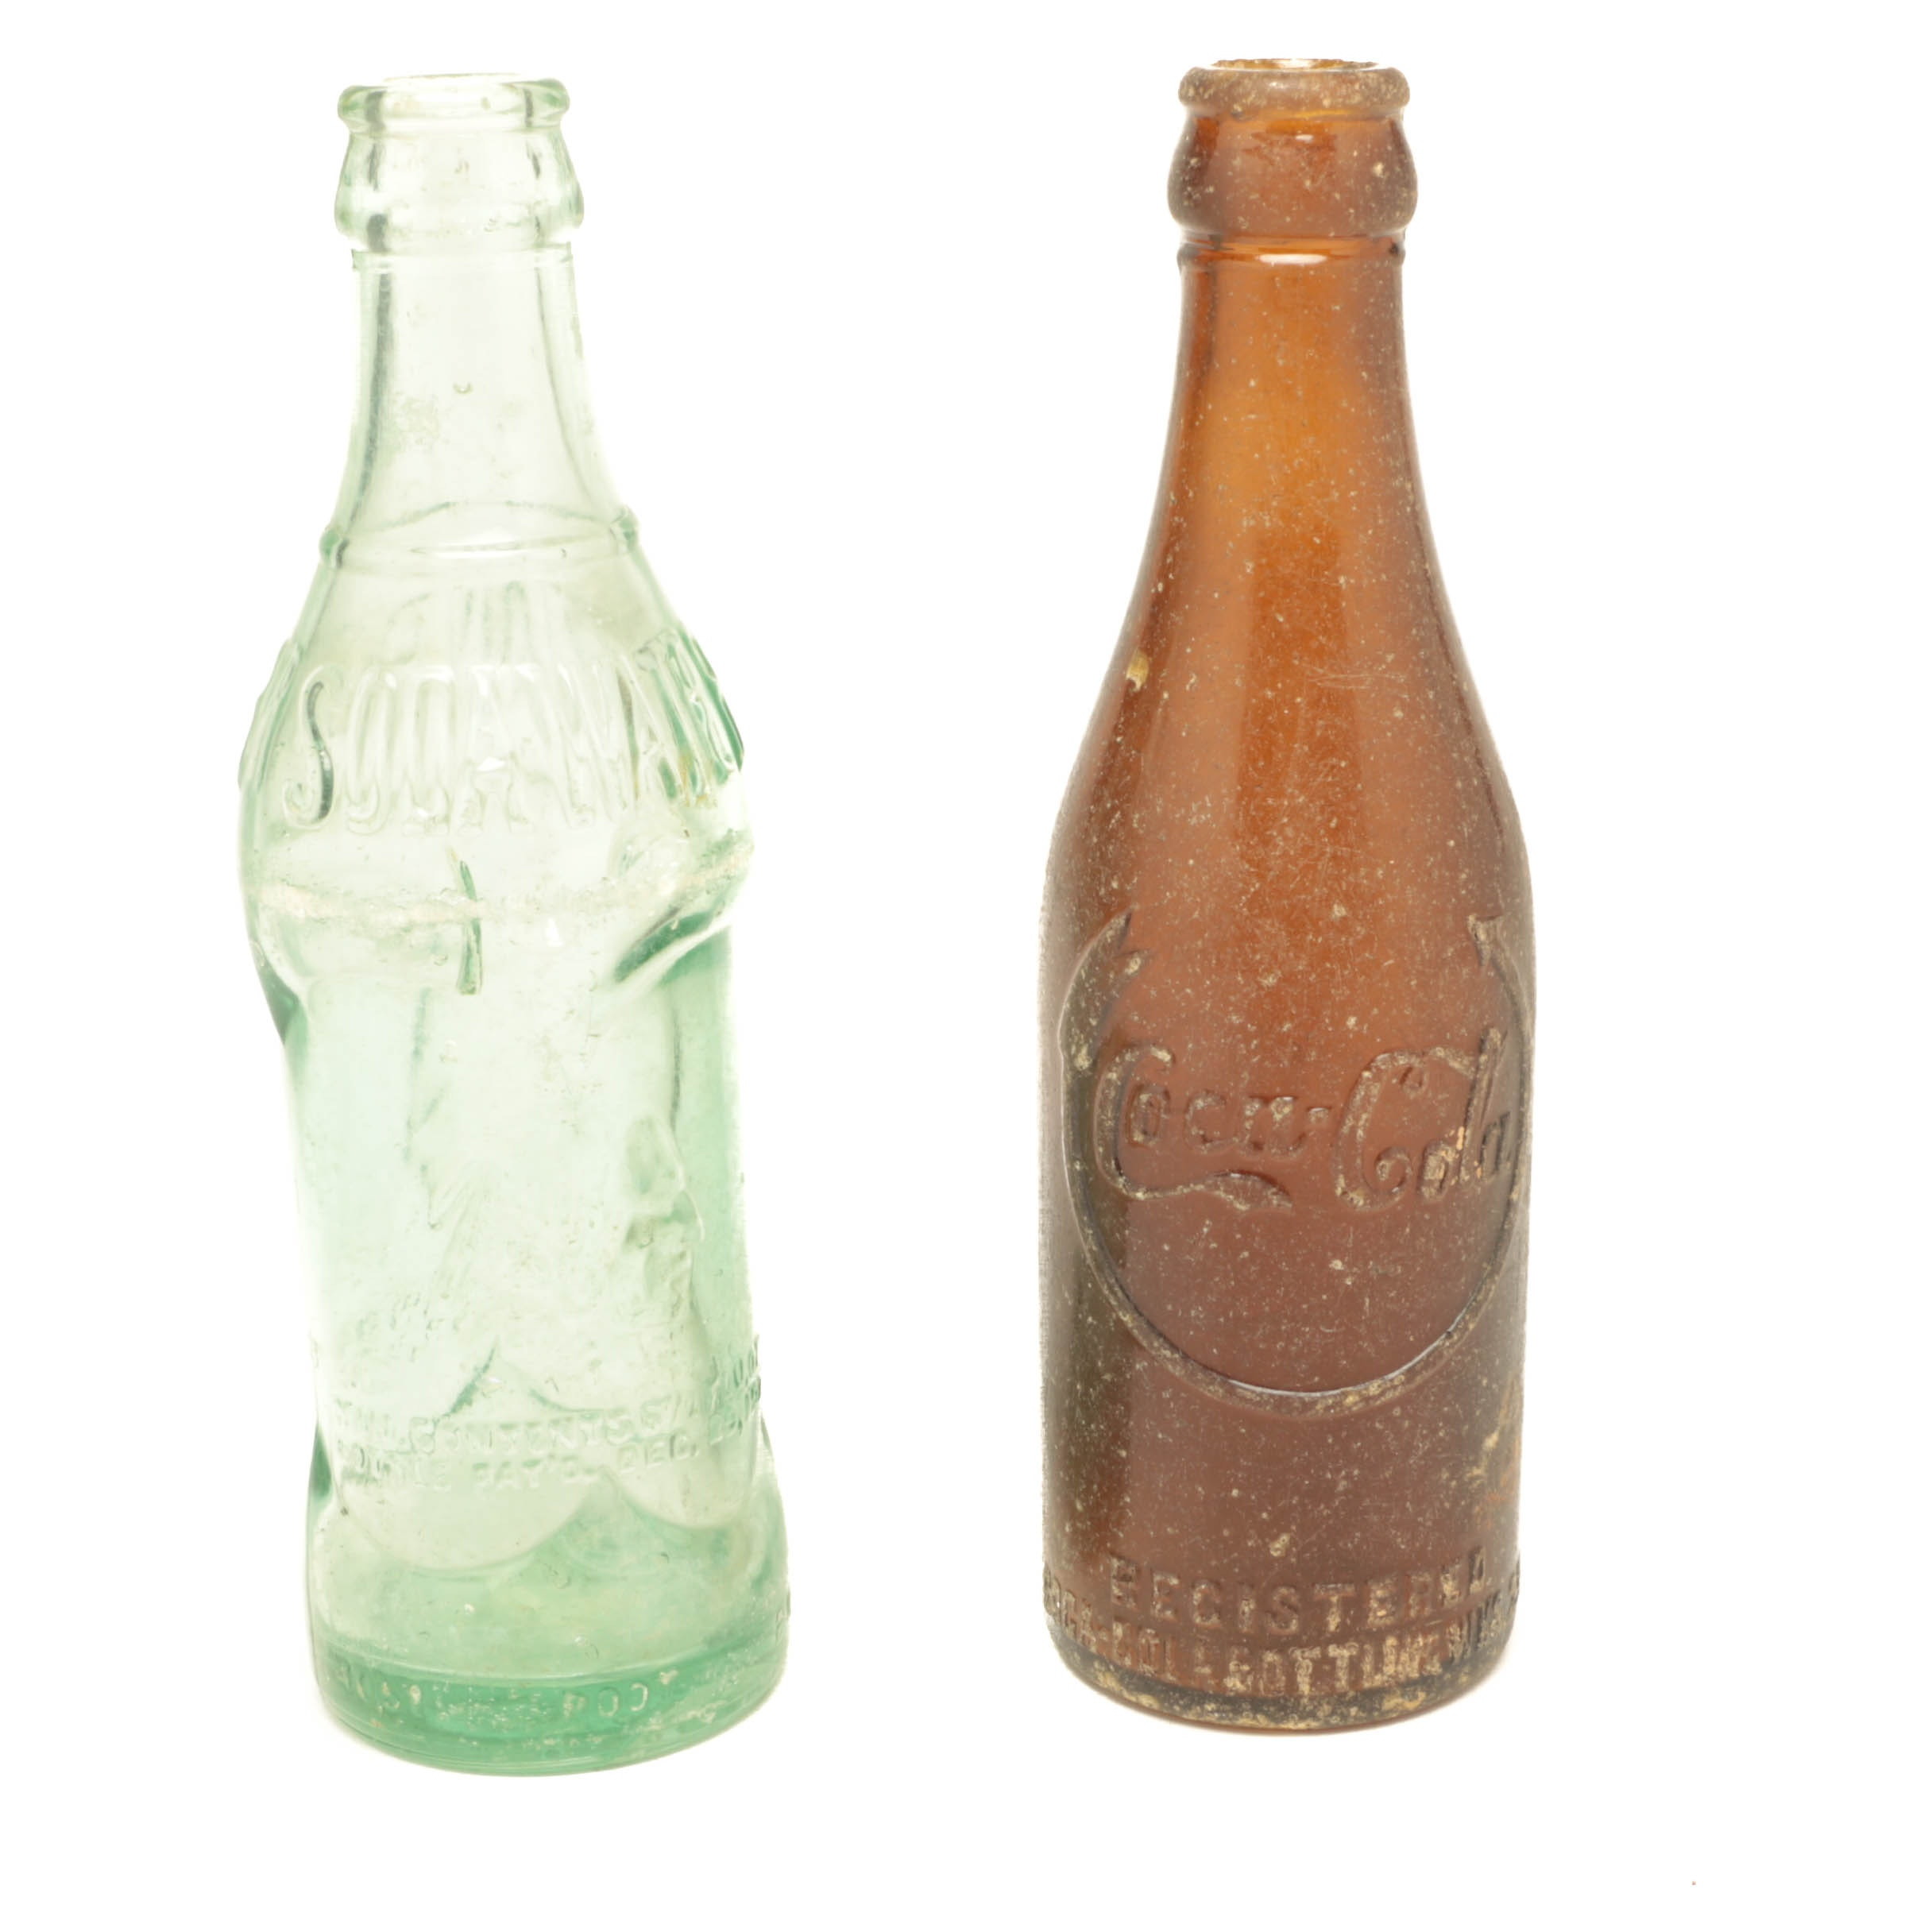 Pair of Vintage Coca-Cola and Indian River Sods Water Bottles